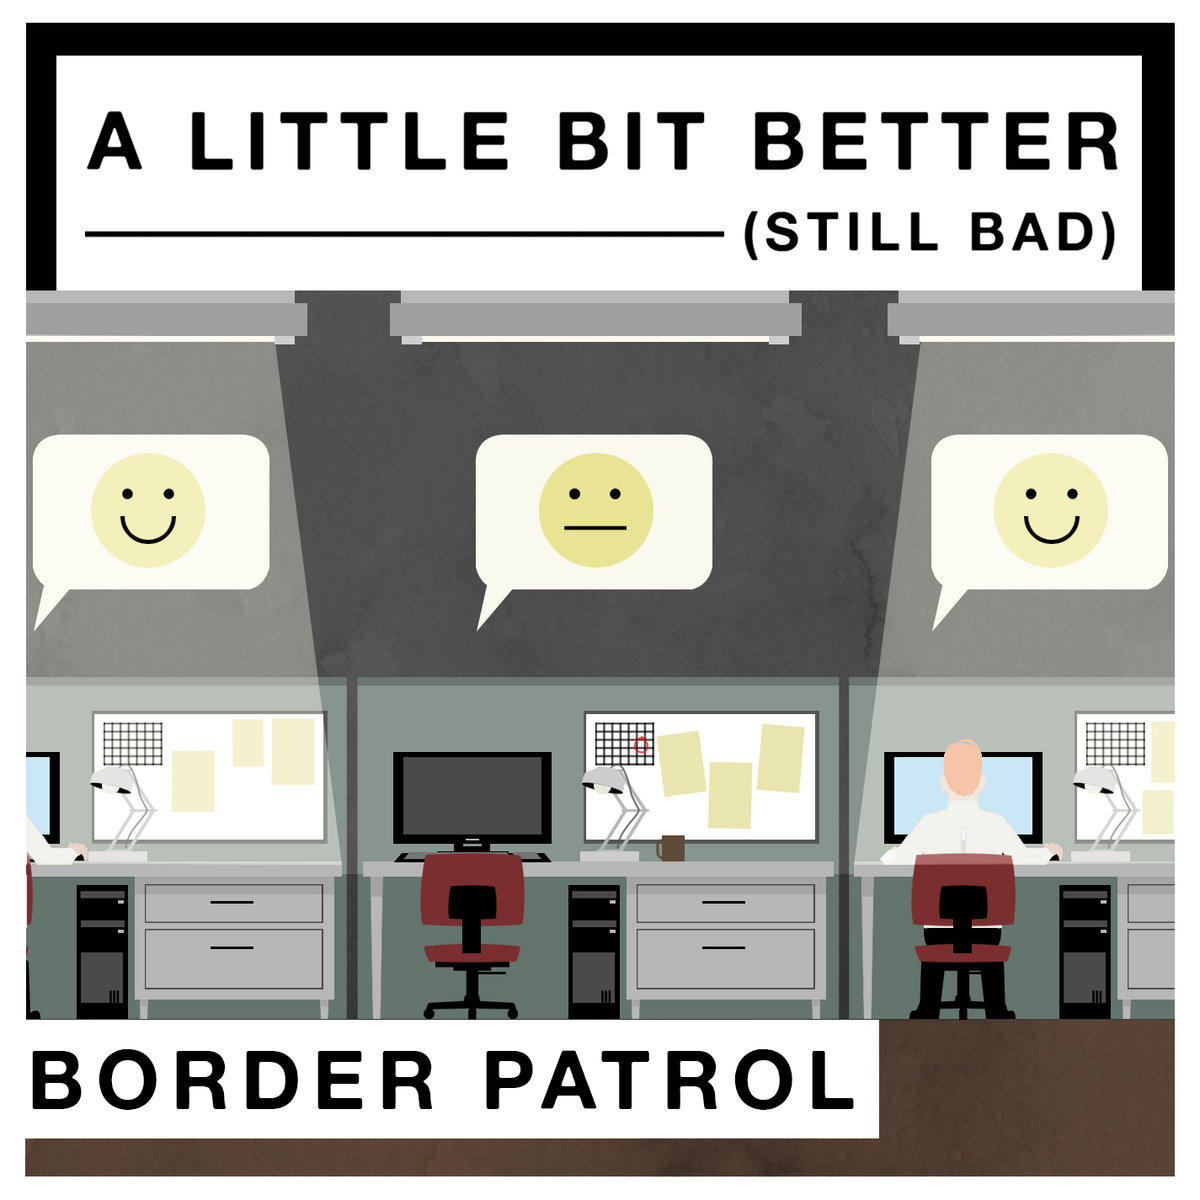 By Border Patrol